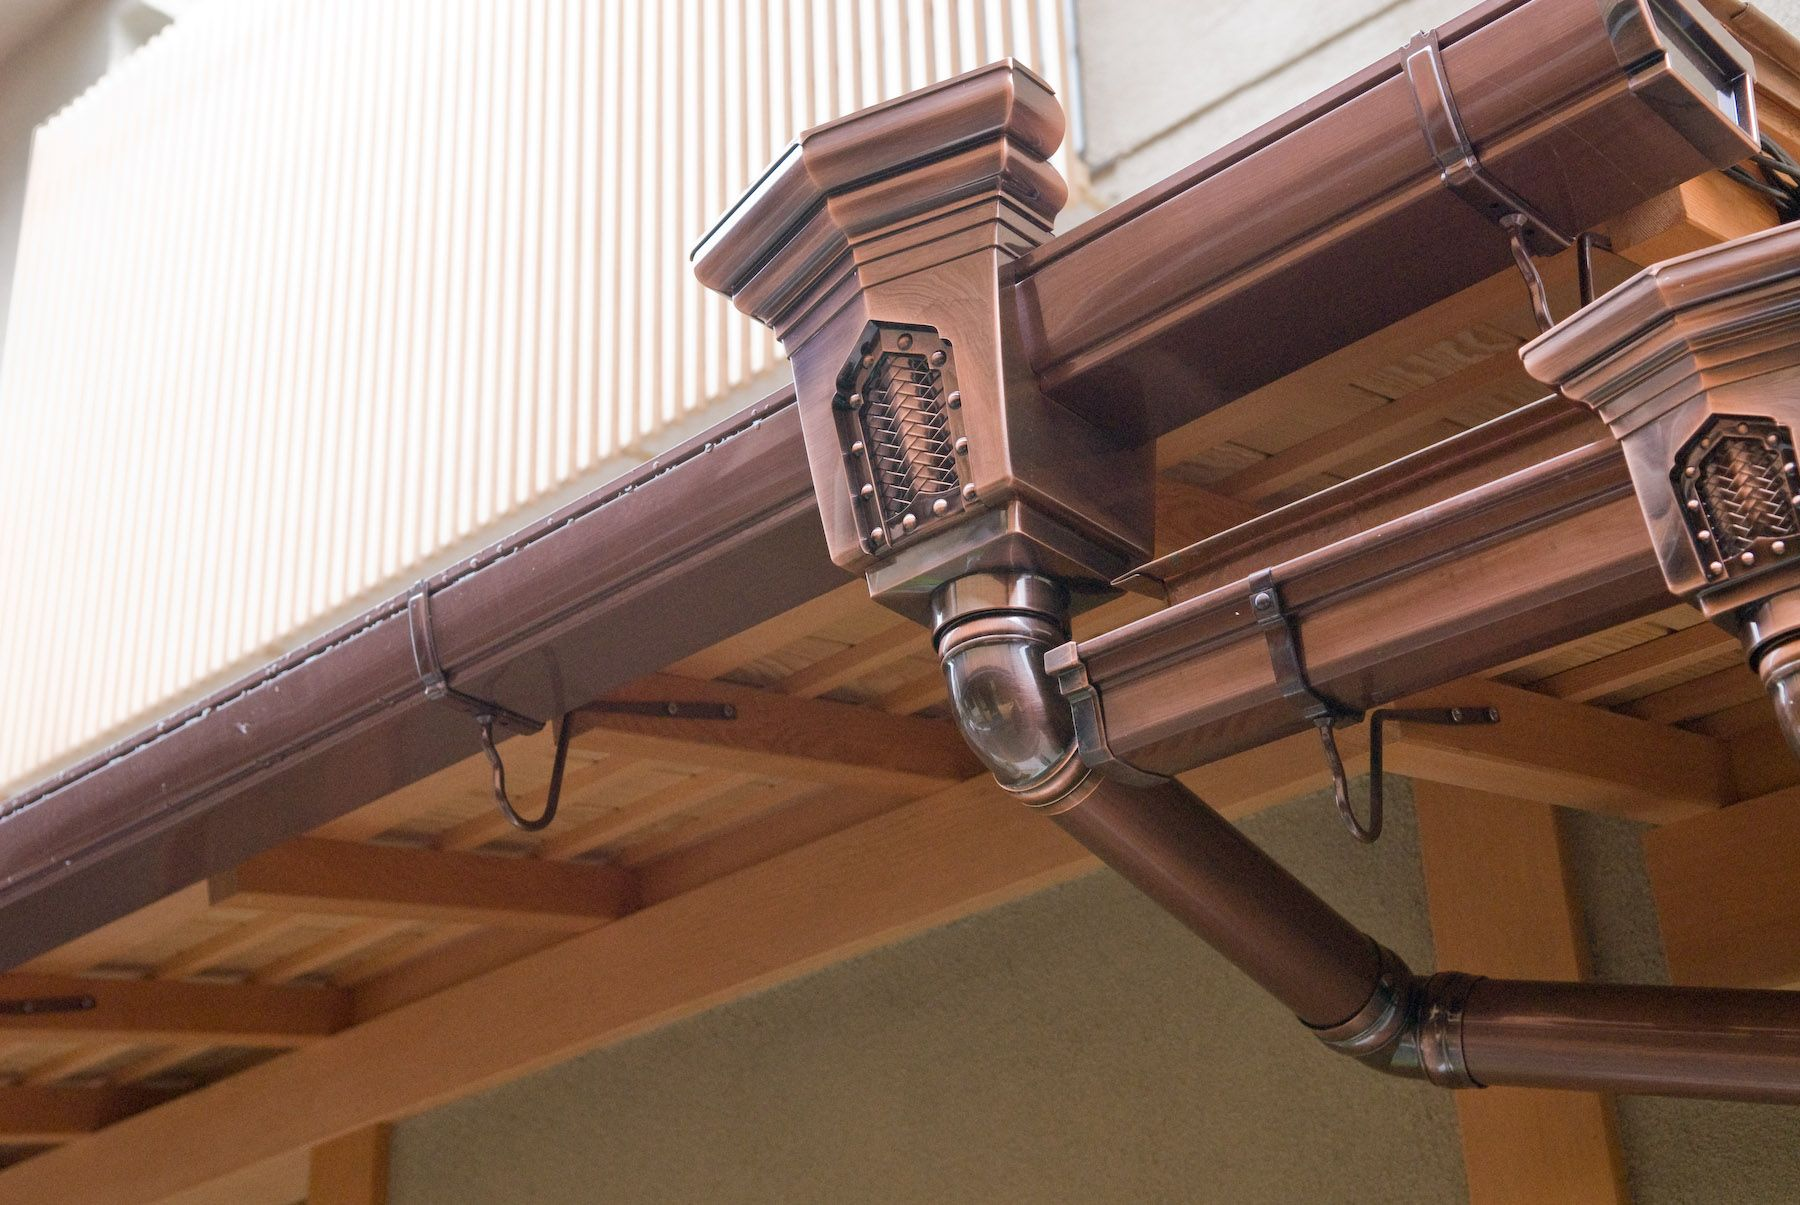 Google Image Result For Http Westbound415 Com Wp Content Uploads 2012 01 Jef 033619 Jpg Copper Gutters Gutters Steampunk House